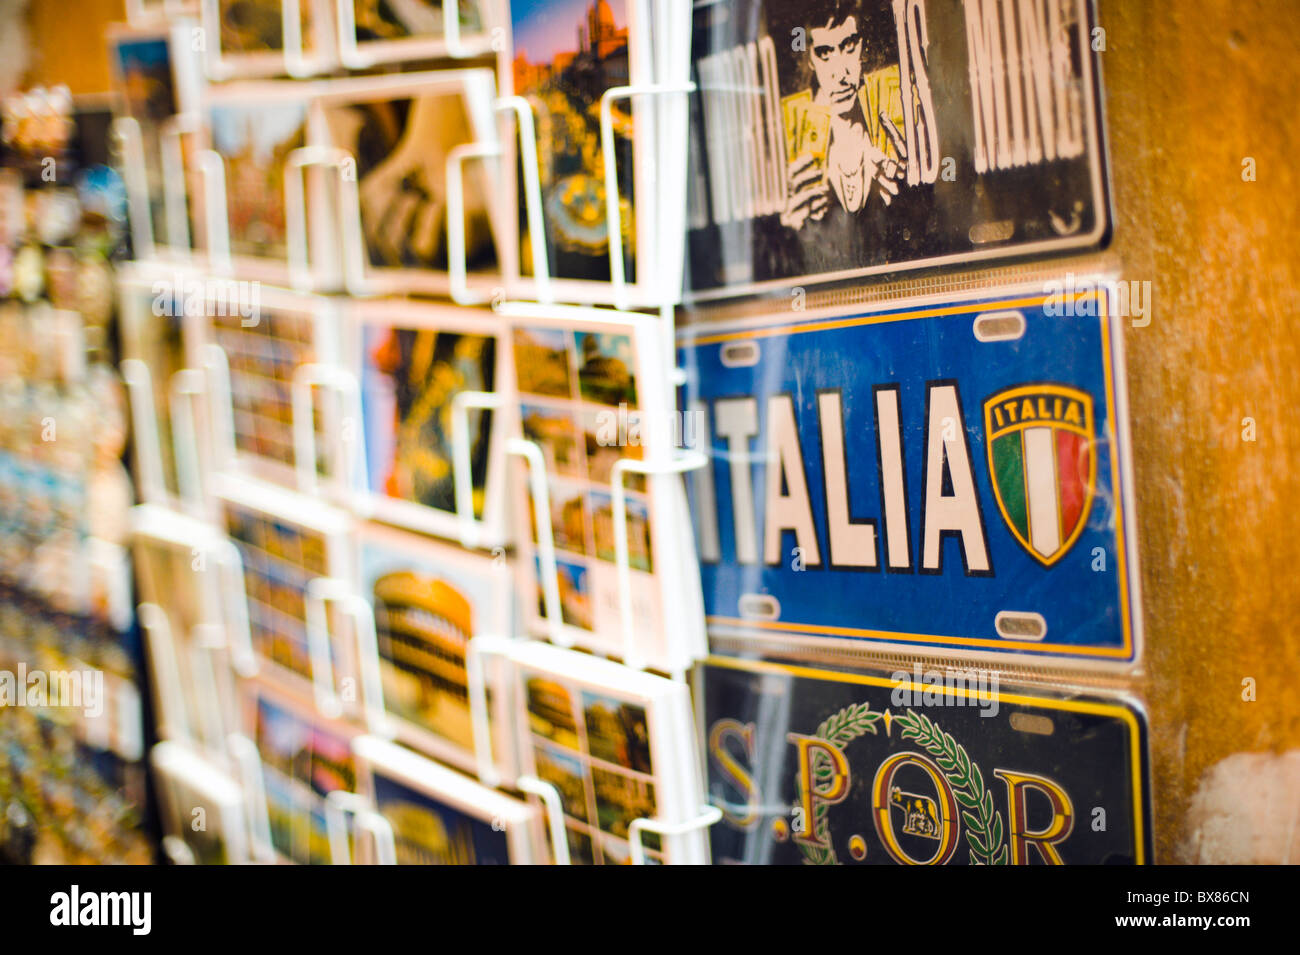 Night photo of postcards for sale at a newsstand, shallow DOF - Stock Image